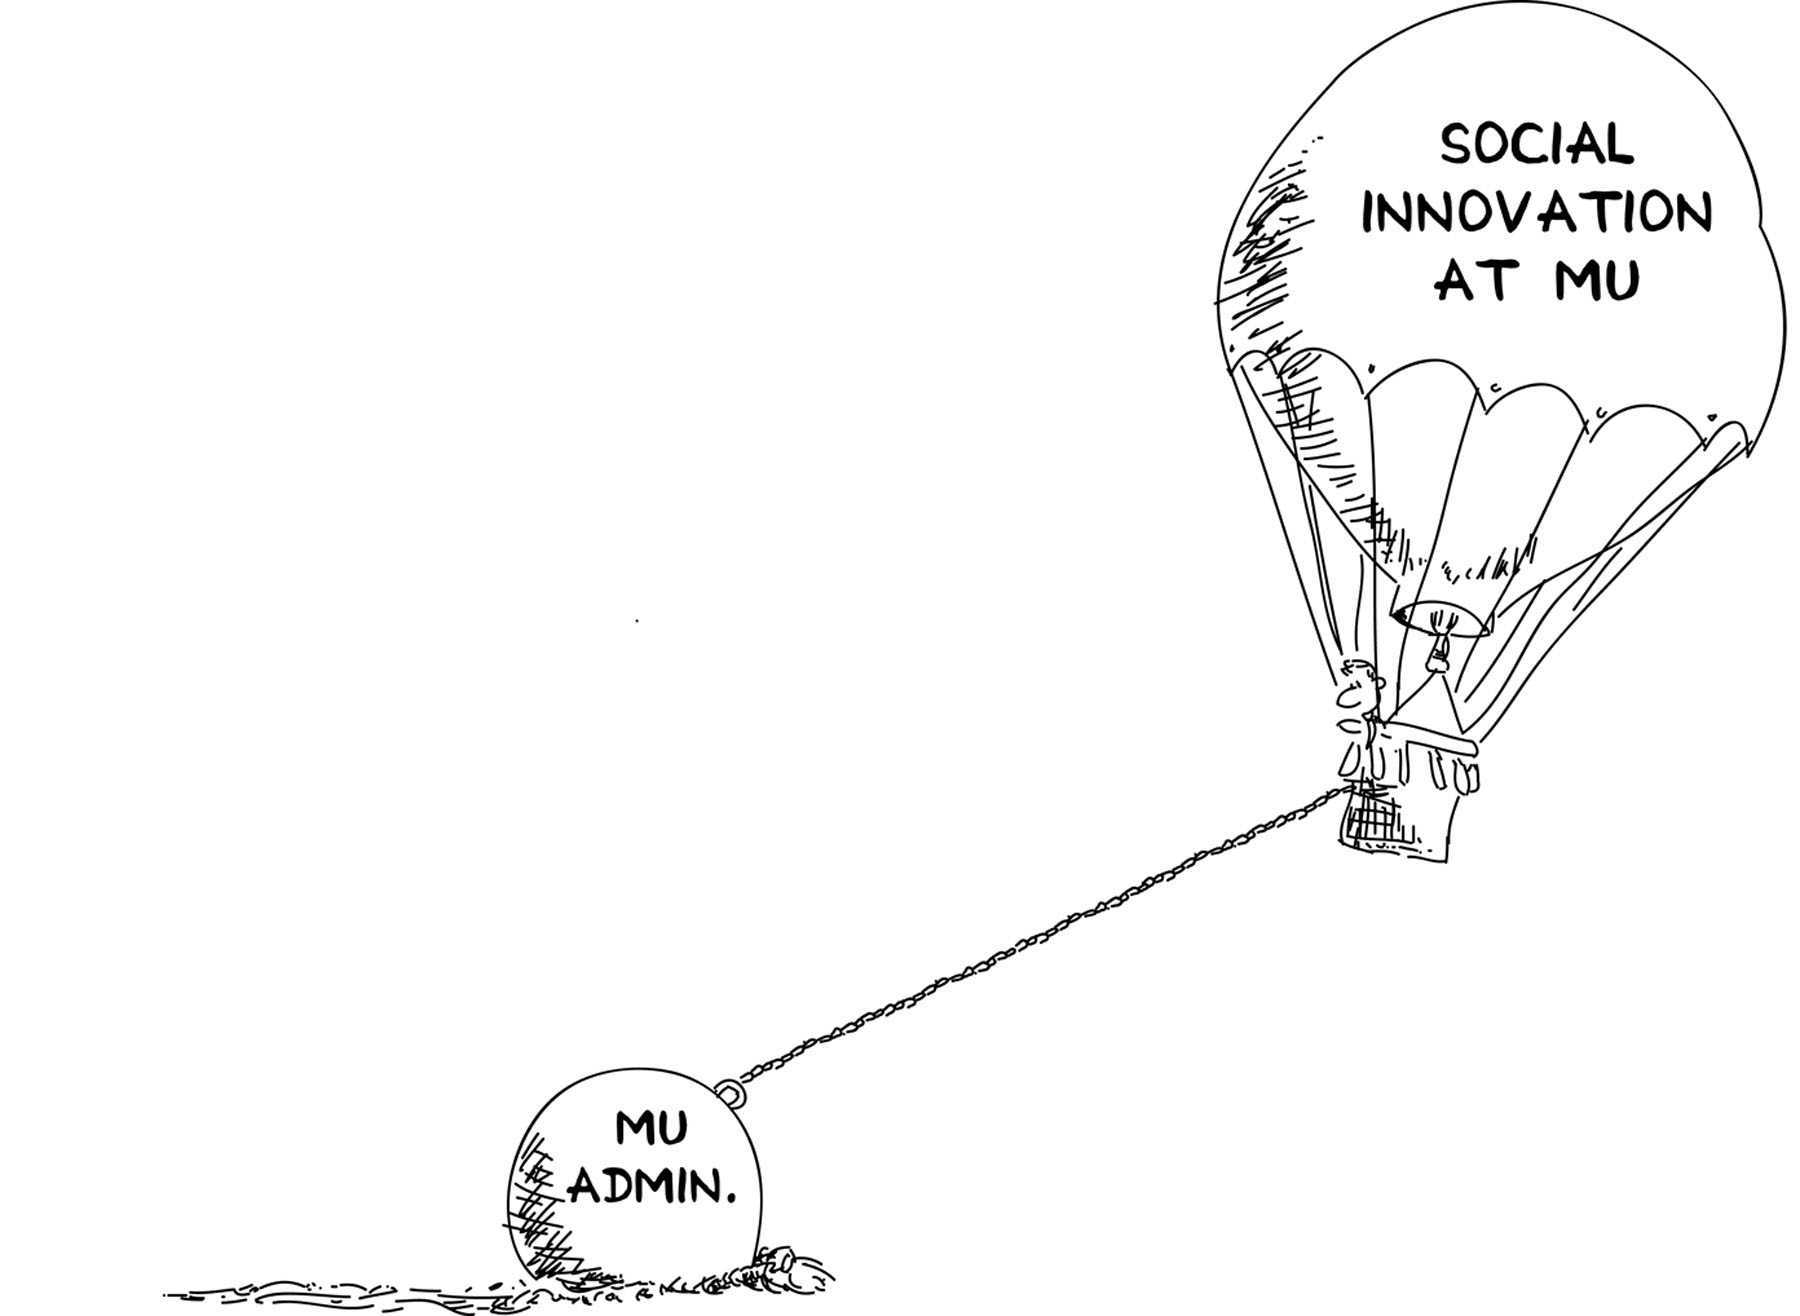 Marquette Wire : EDITORIAL: Social innovation crucial to